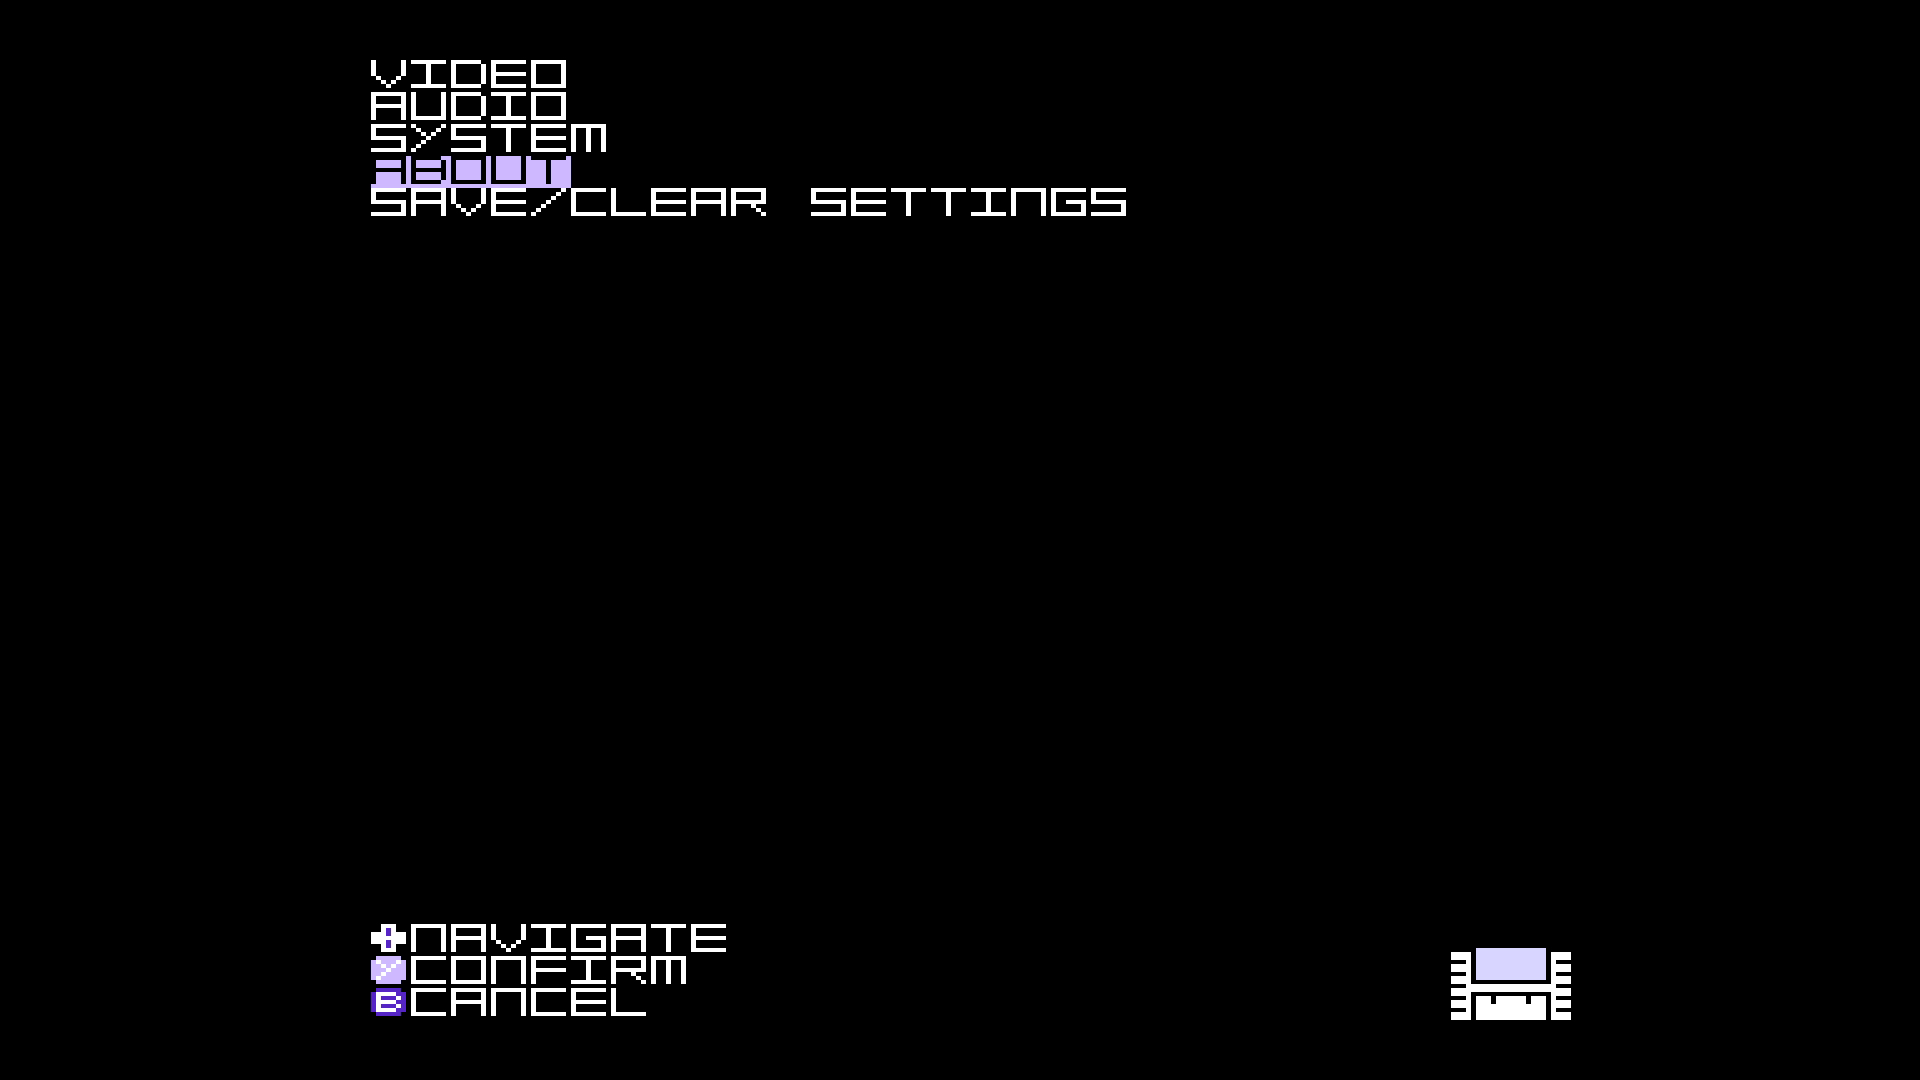 A screenshot of the Super Nt Settings Menu with the About option highlighted.